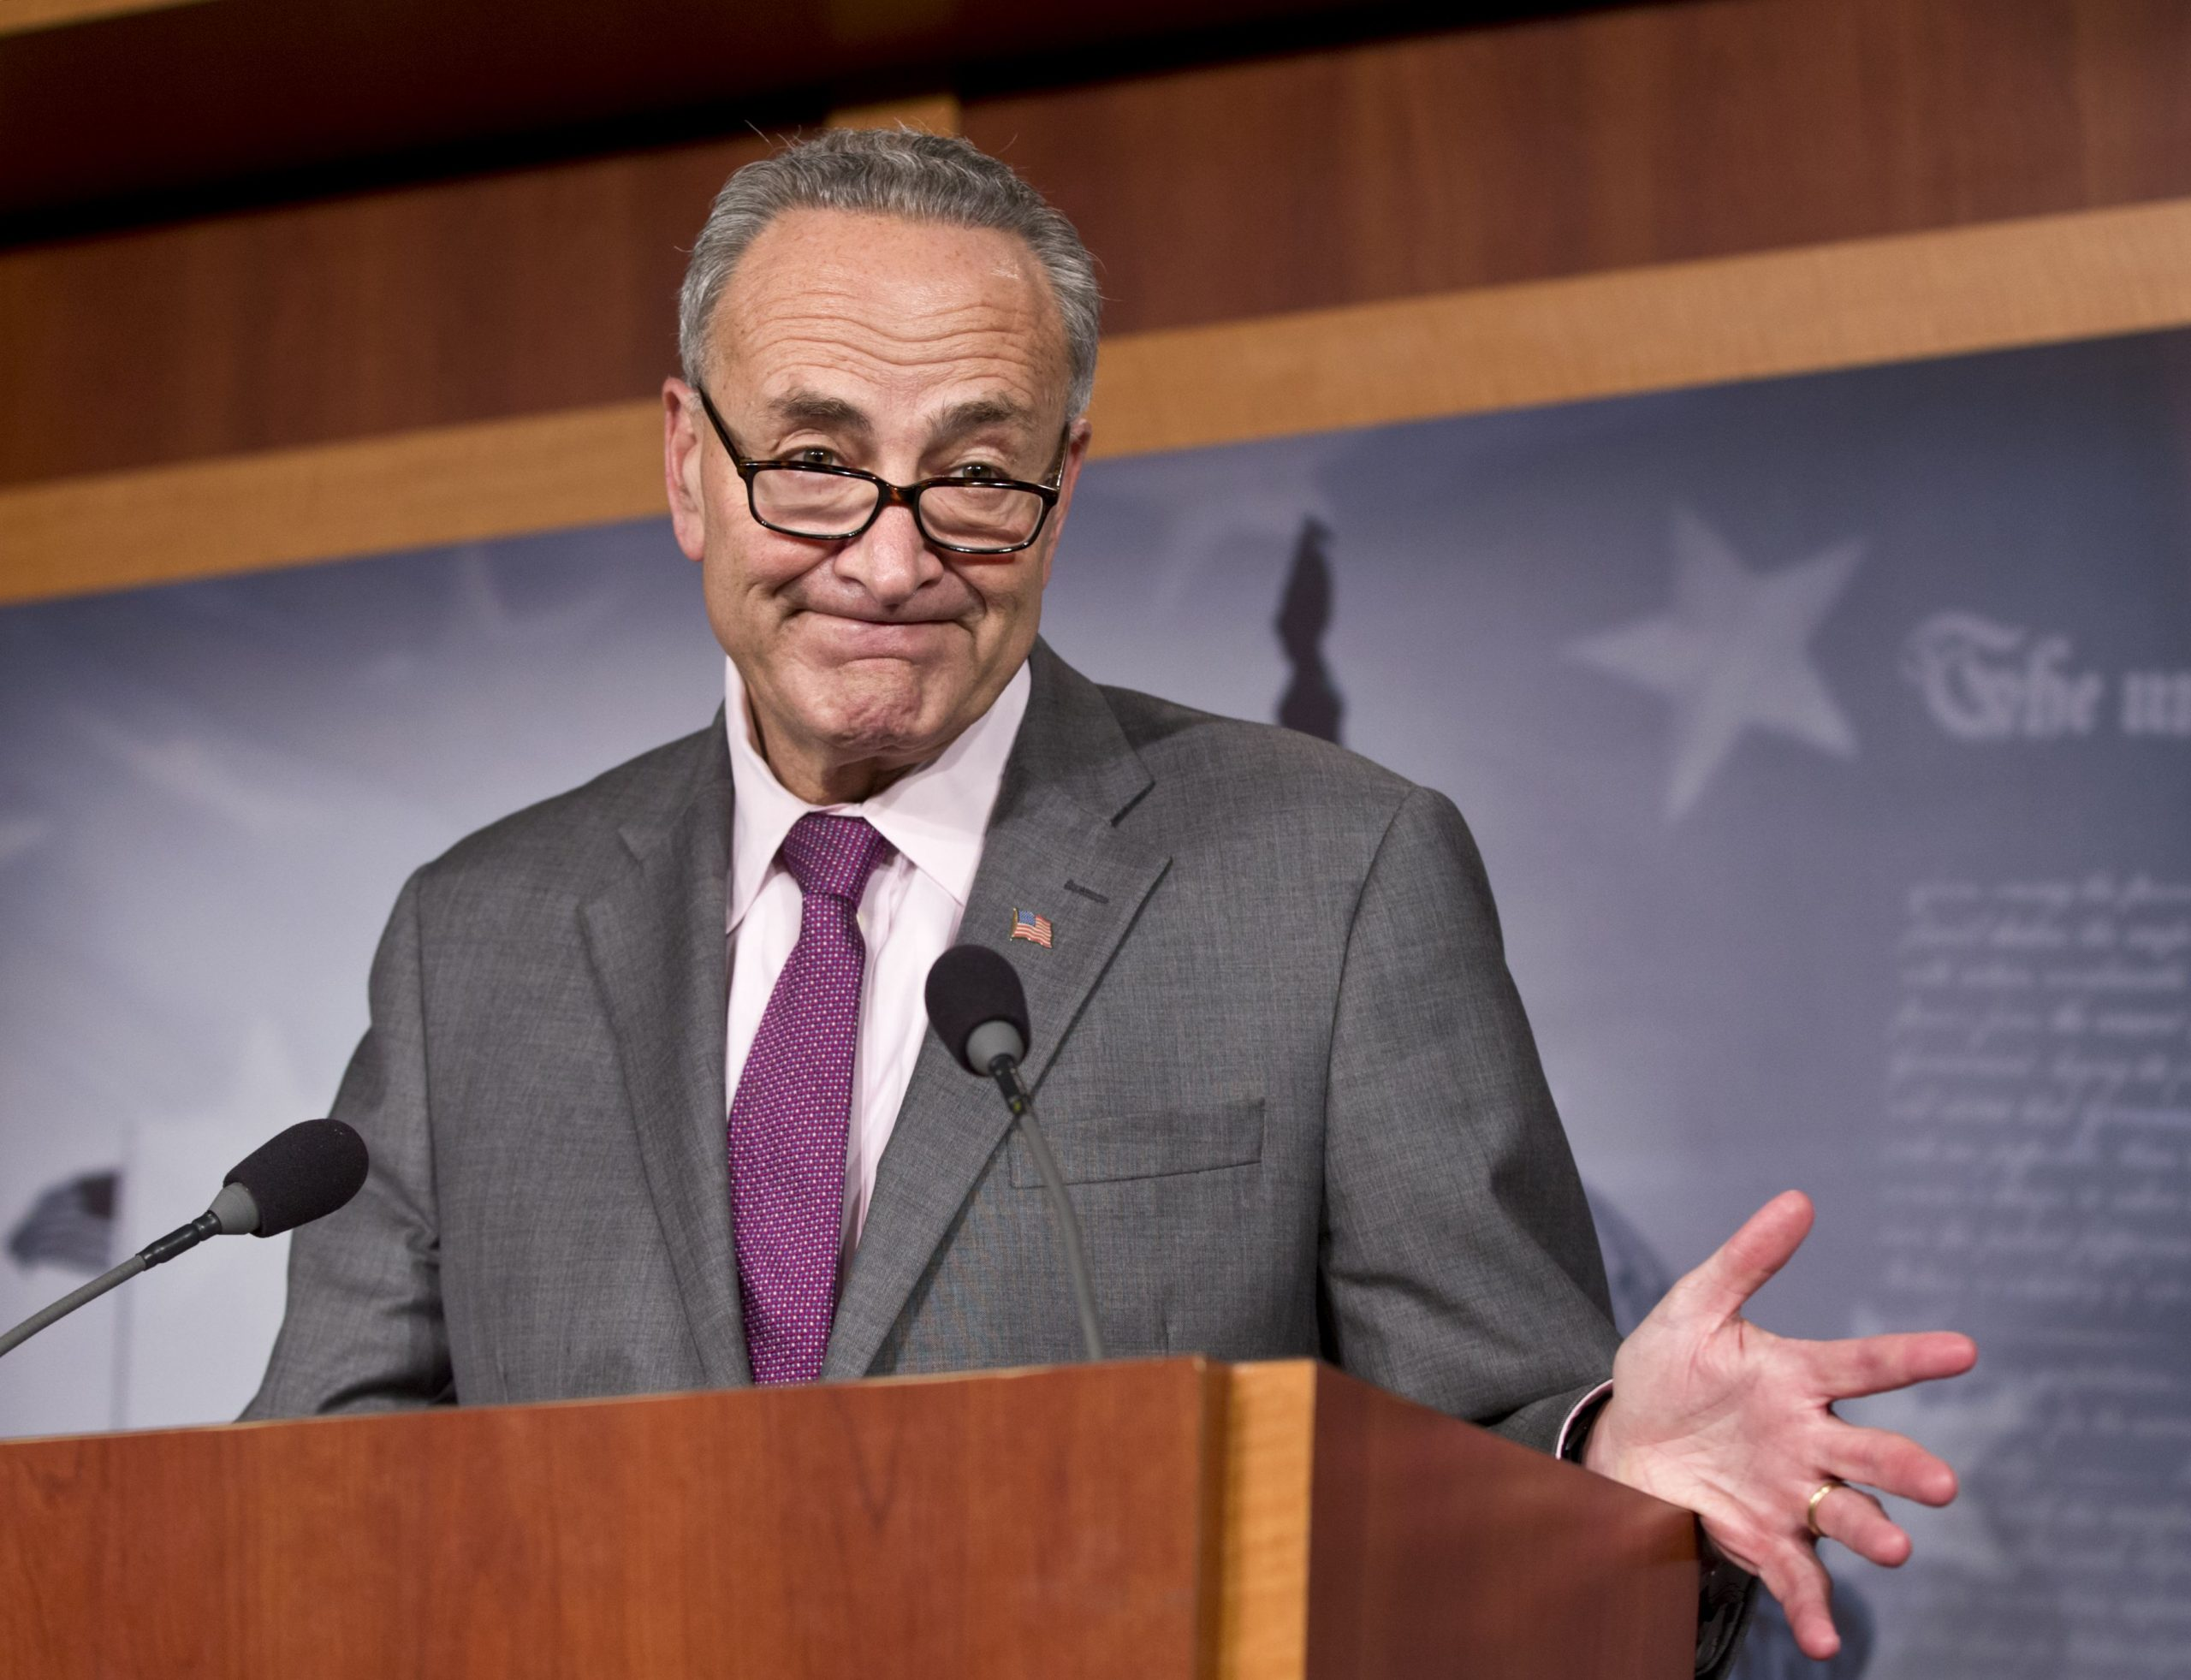 'Nothing Is Off The Table', Schumer Says About Scrapping The Filibuster